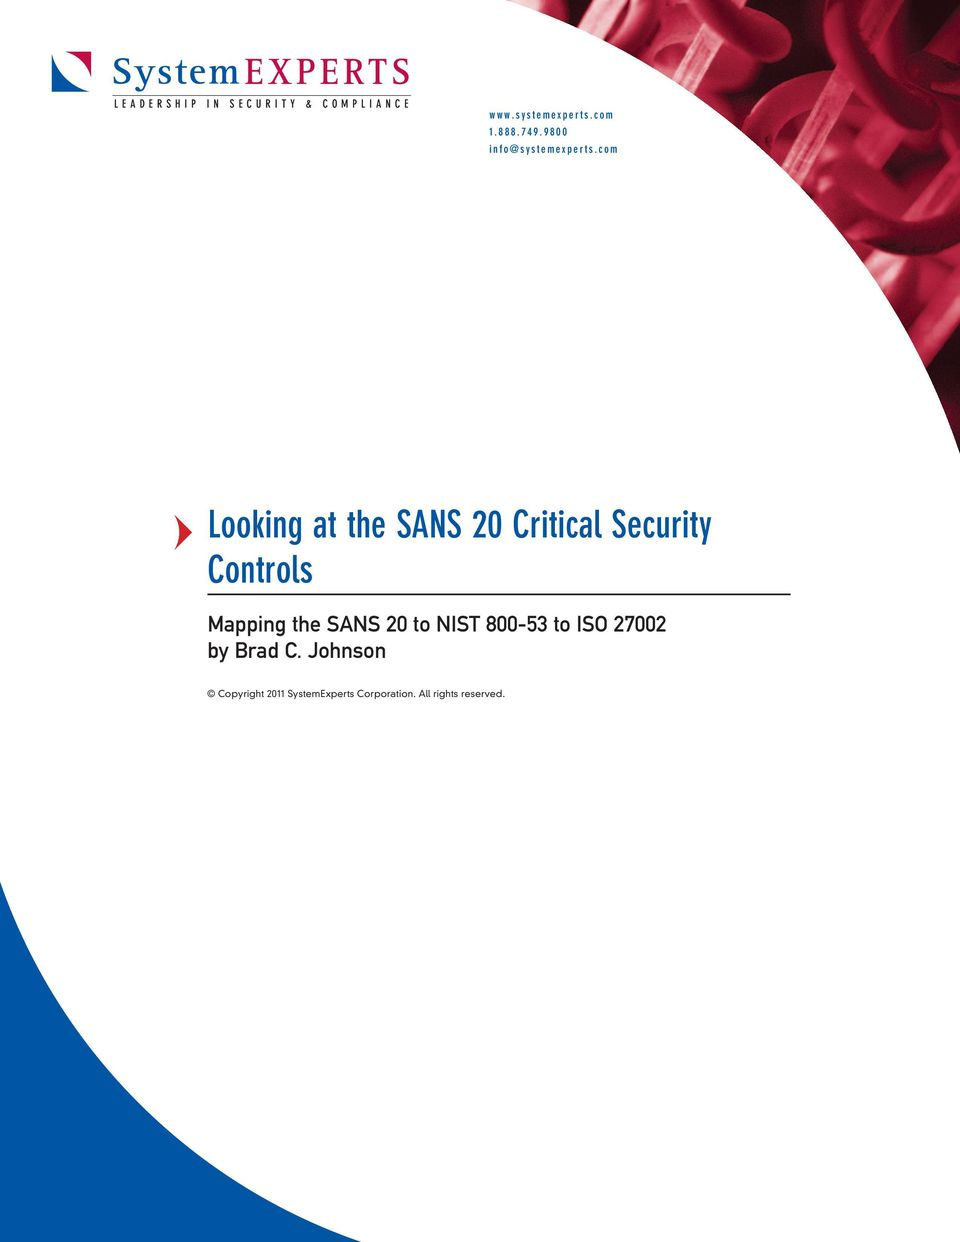 Mapping the SANS 20 to NIST